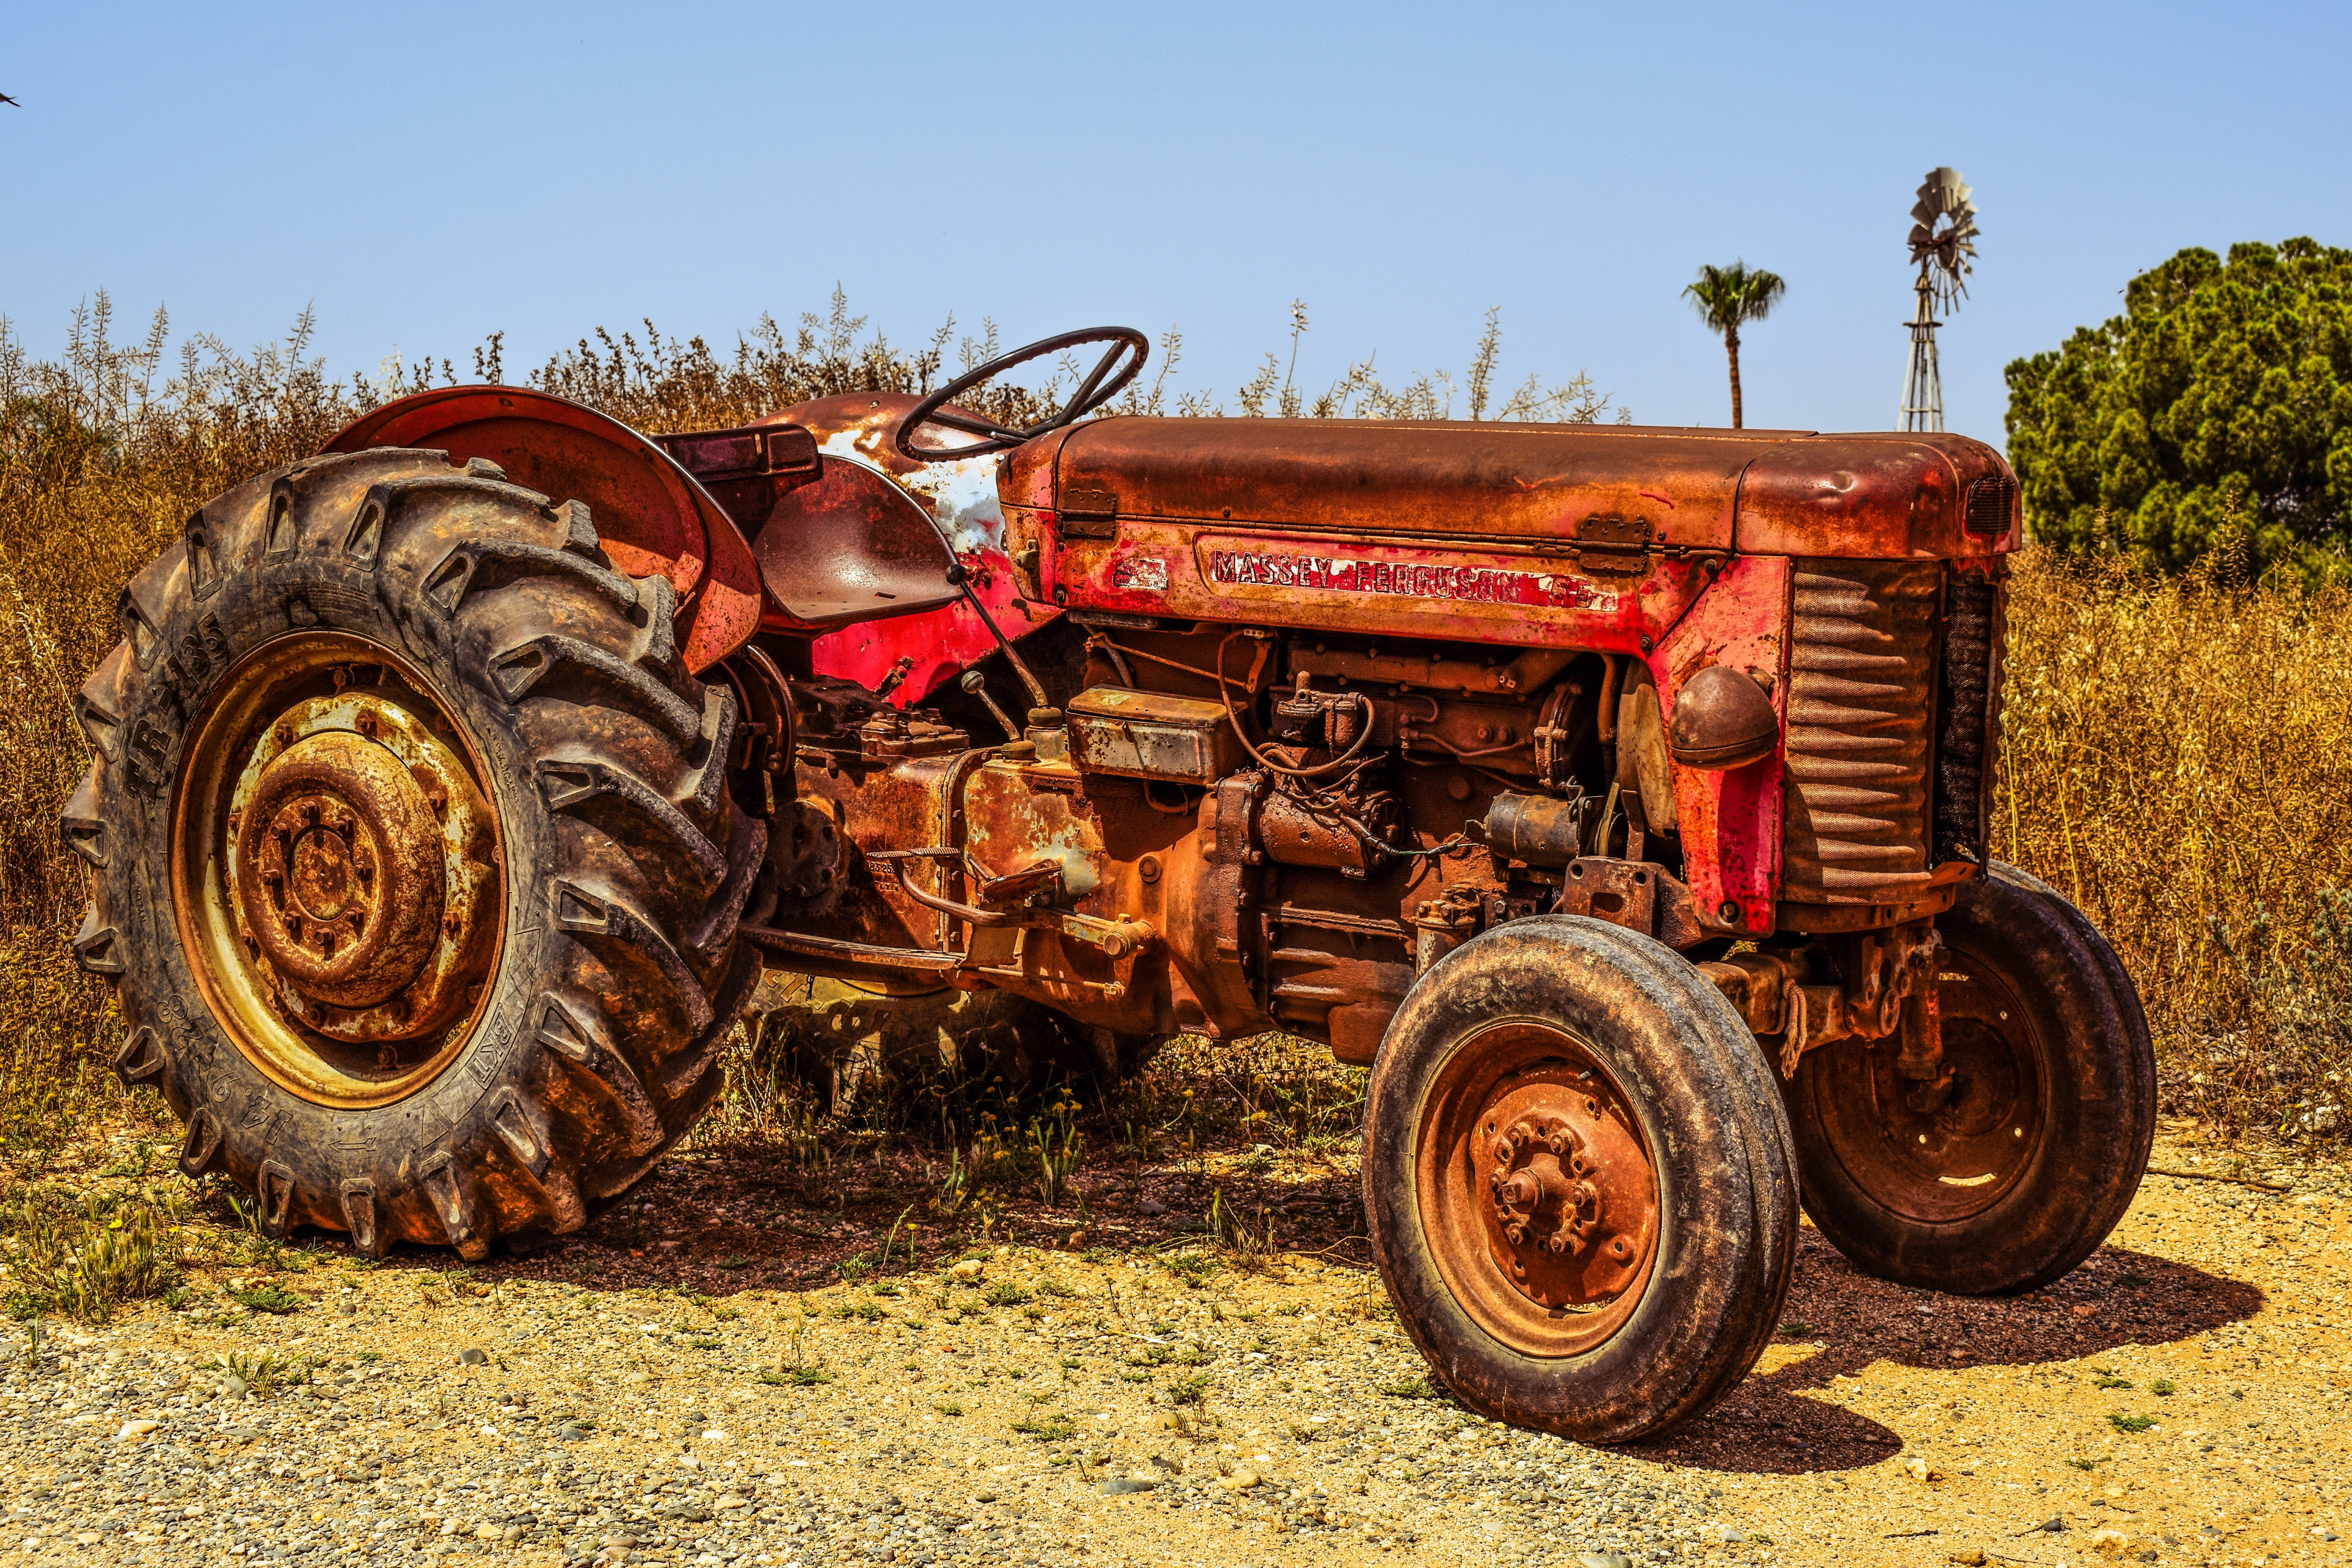 Free stock photo of countryside, vehicle, agriculture, farm